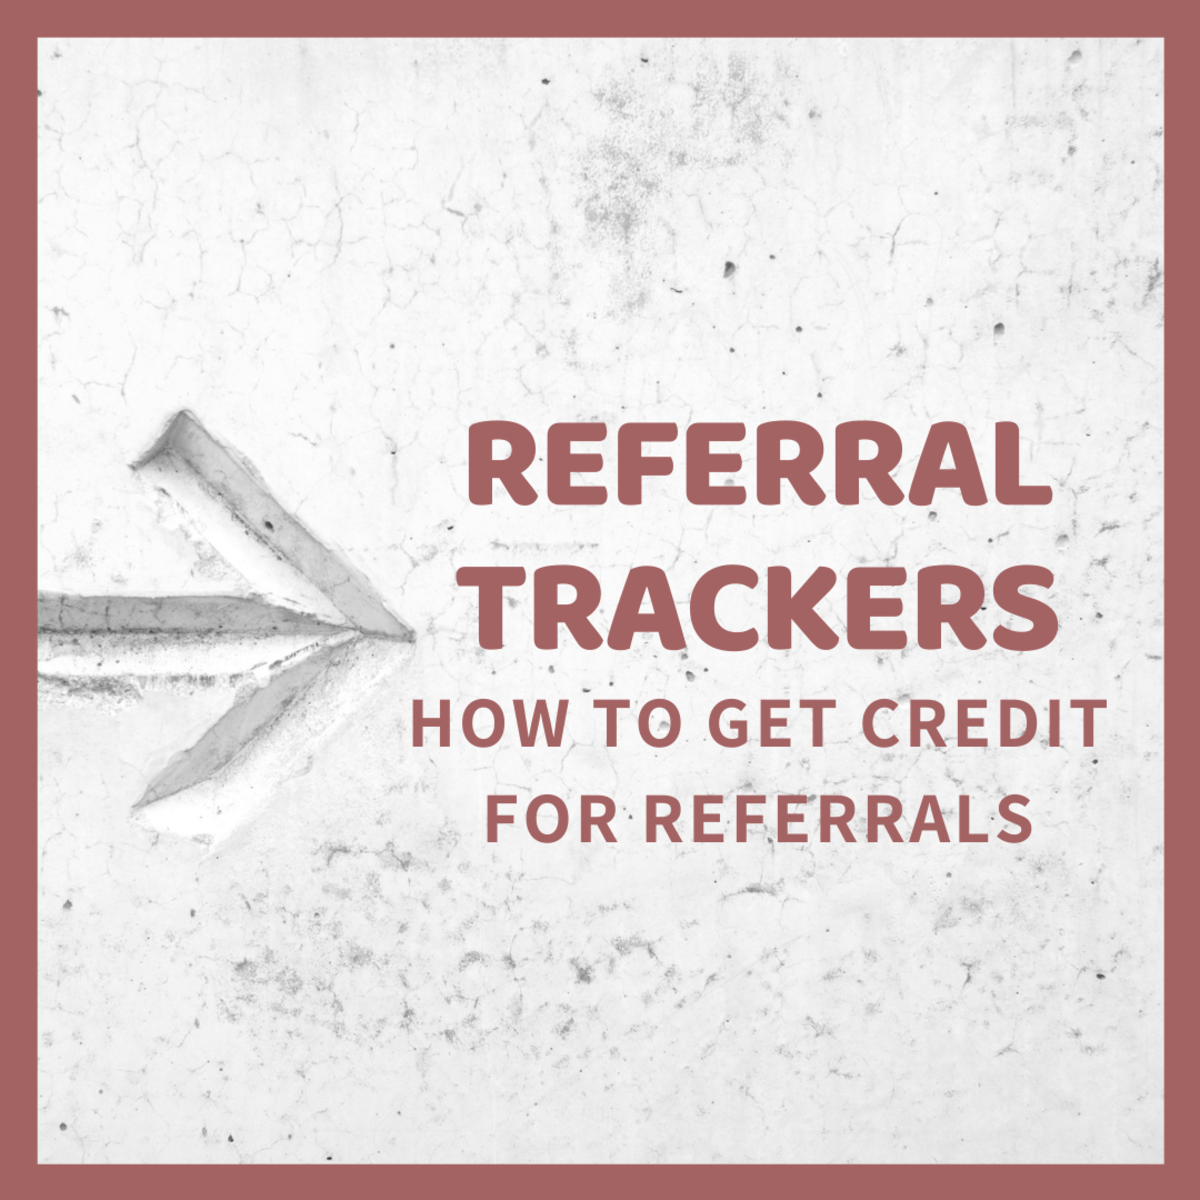 You can use referral trackers to ensure that you receive credit for your referrals. Find out how.